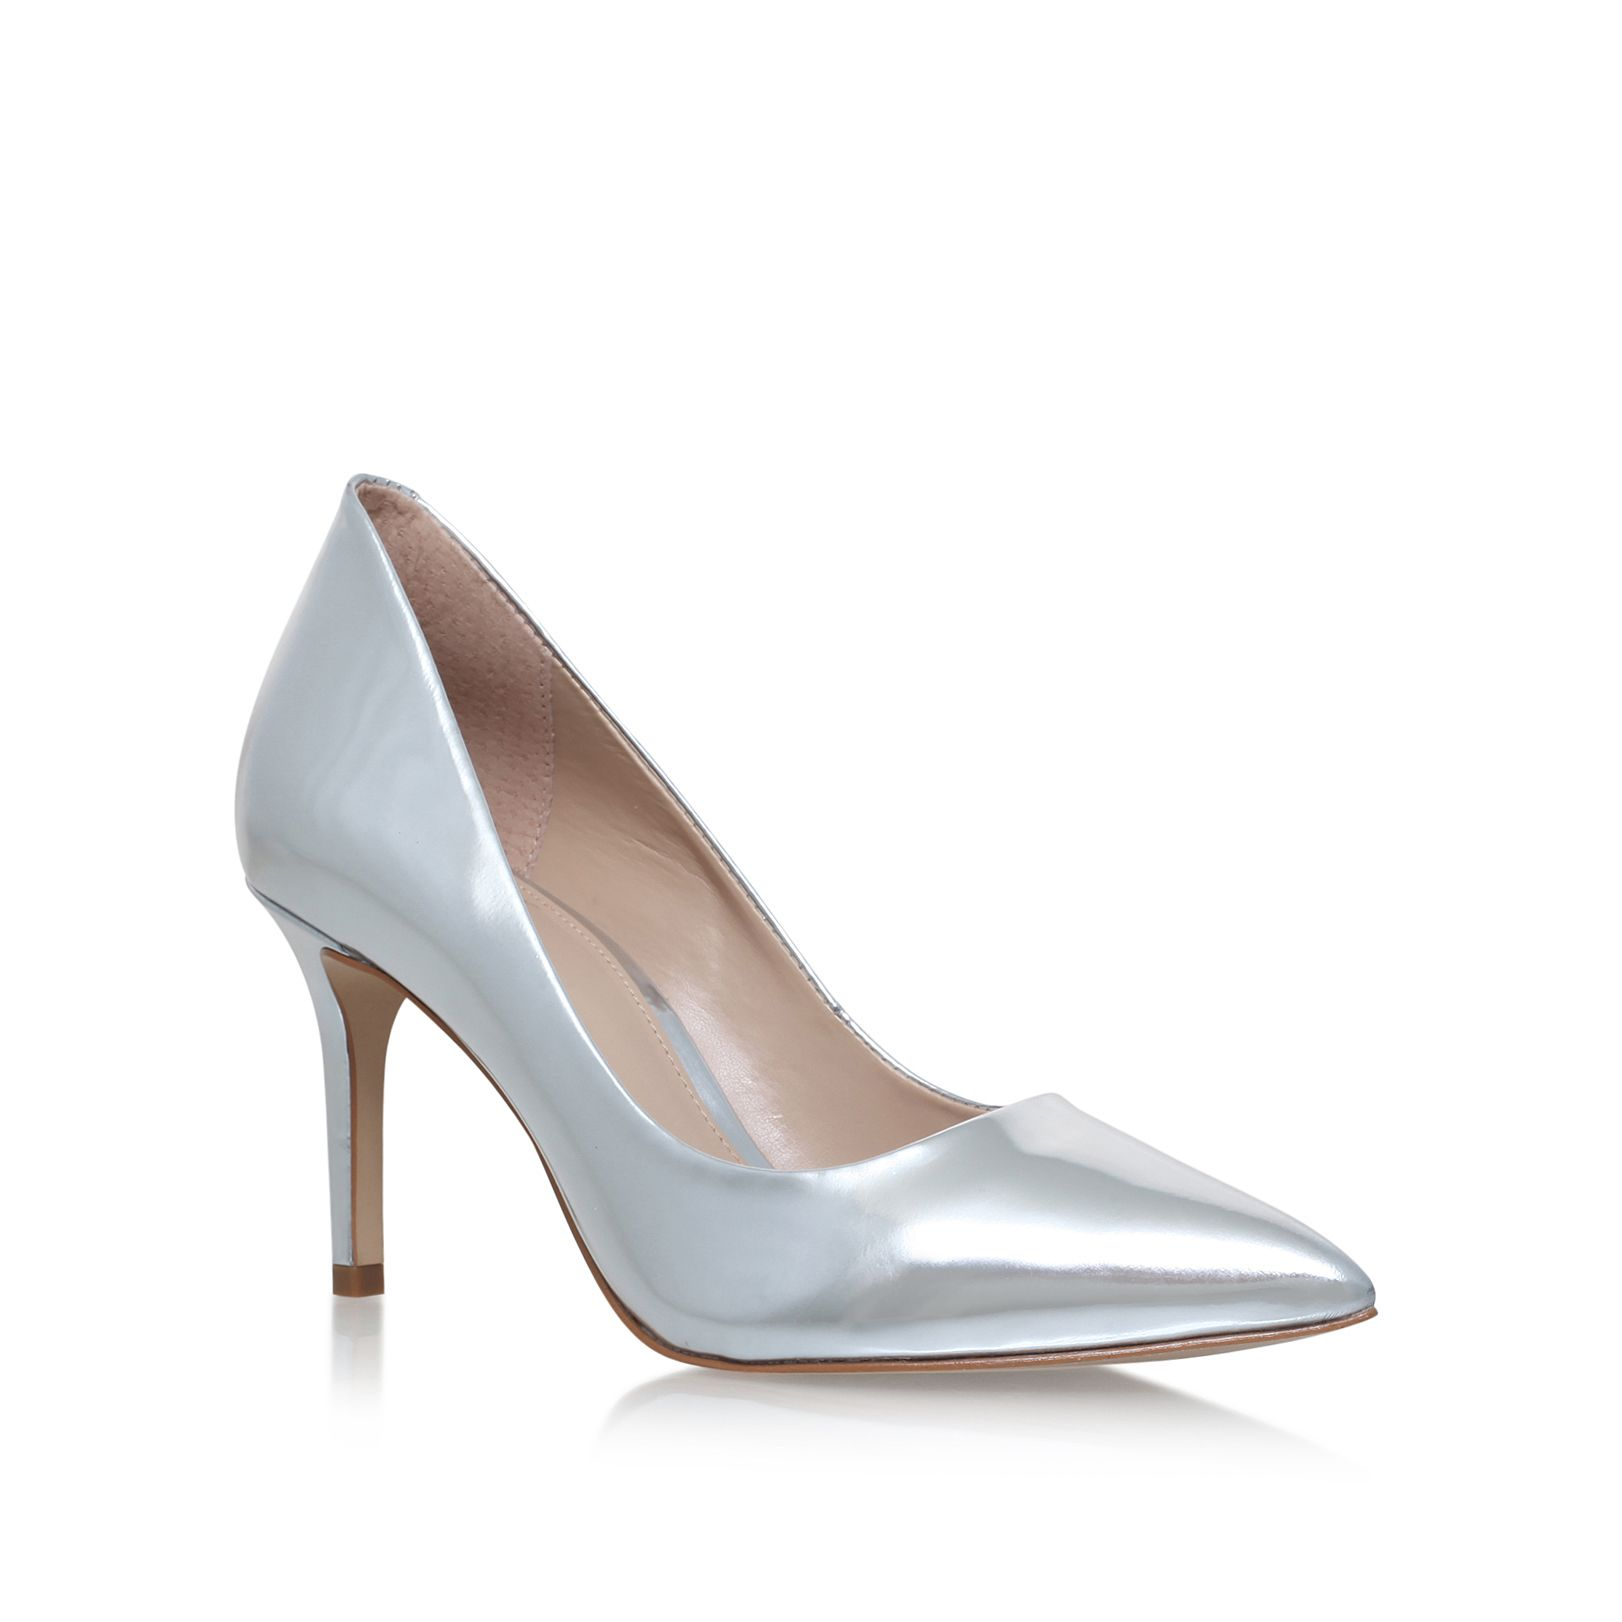 Indulge in exquisite style with glamorous court shoes. For workwear chic, complete your look in pointed nude, black or navy style, whilst red and pink designs are sure to turn heads.